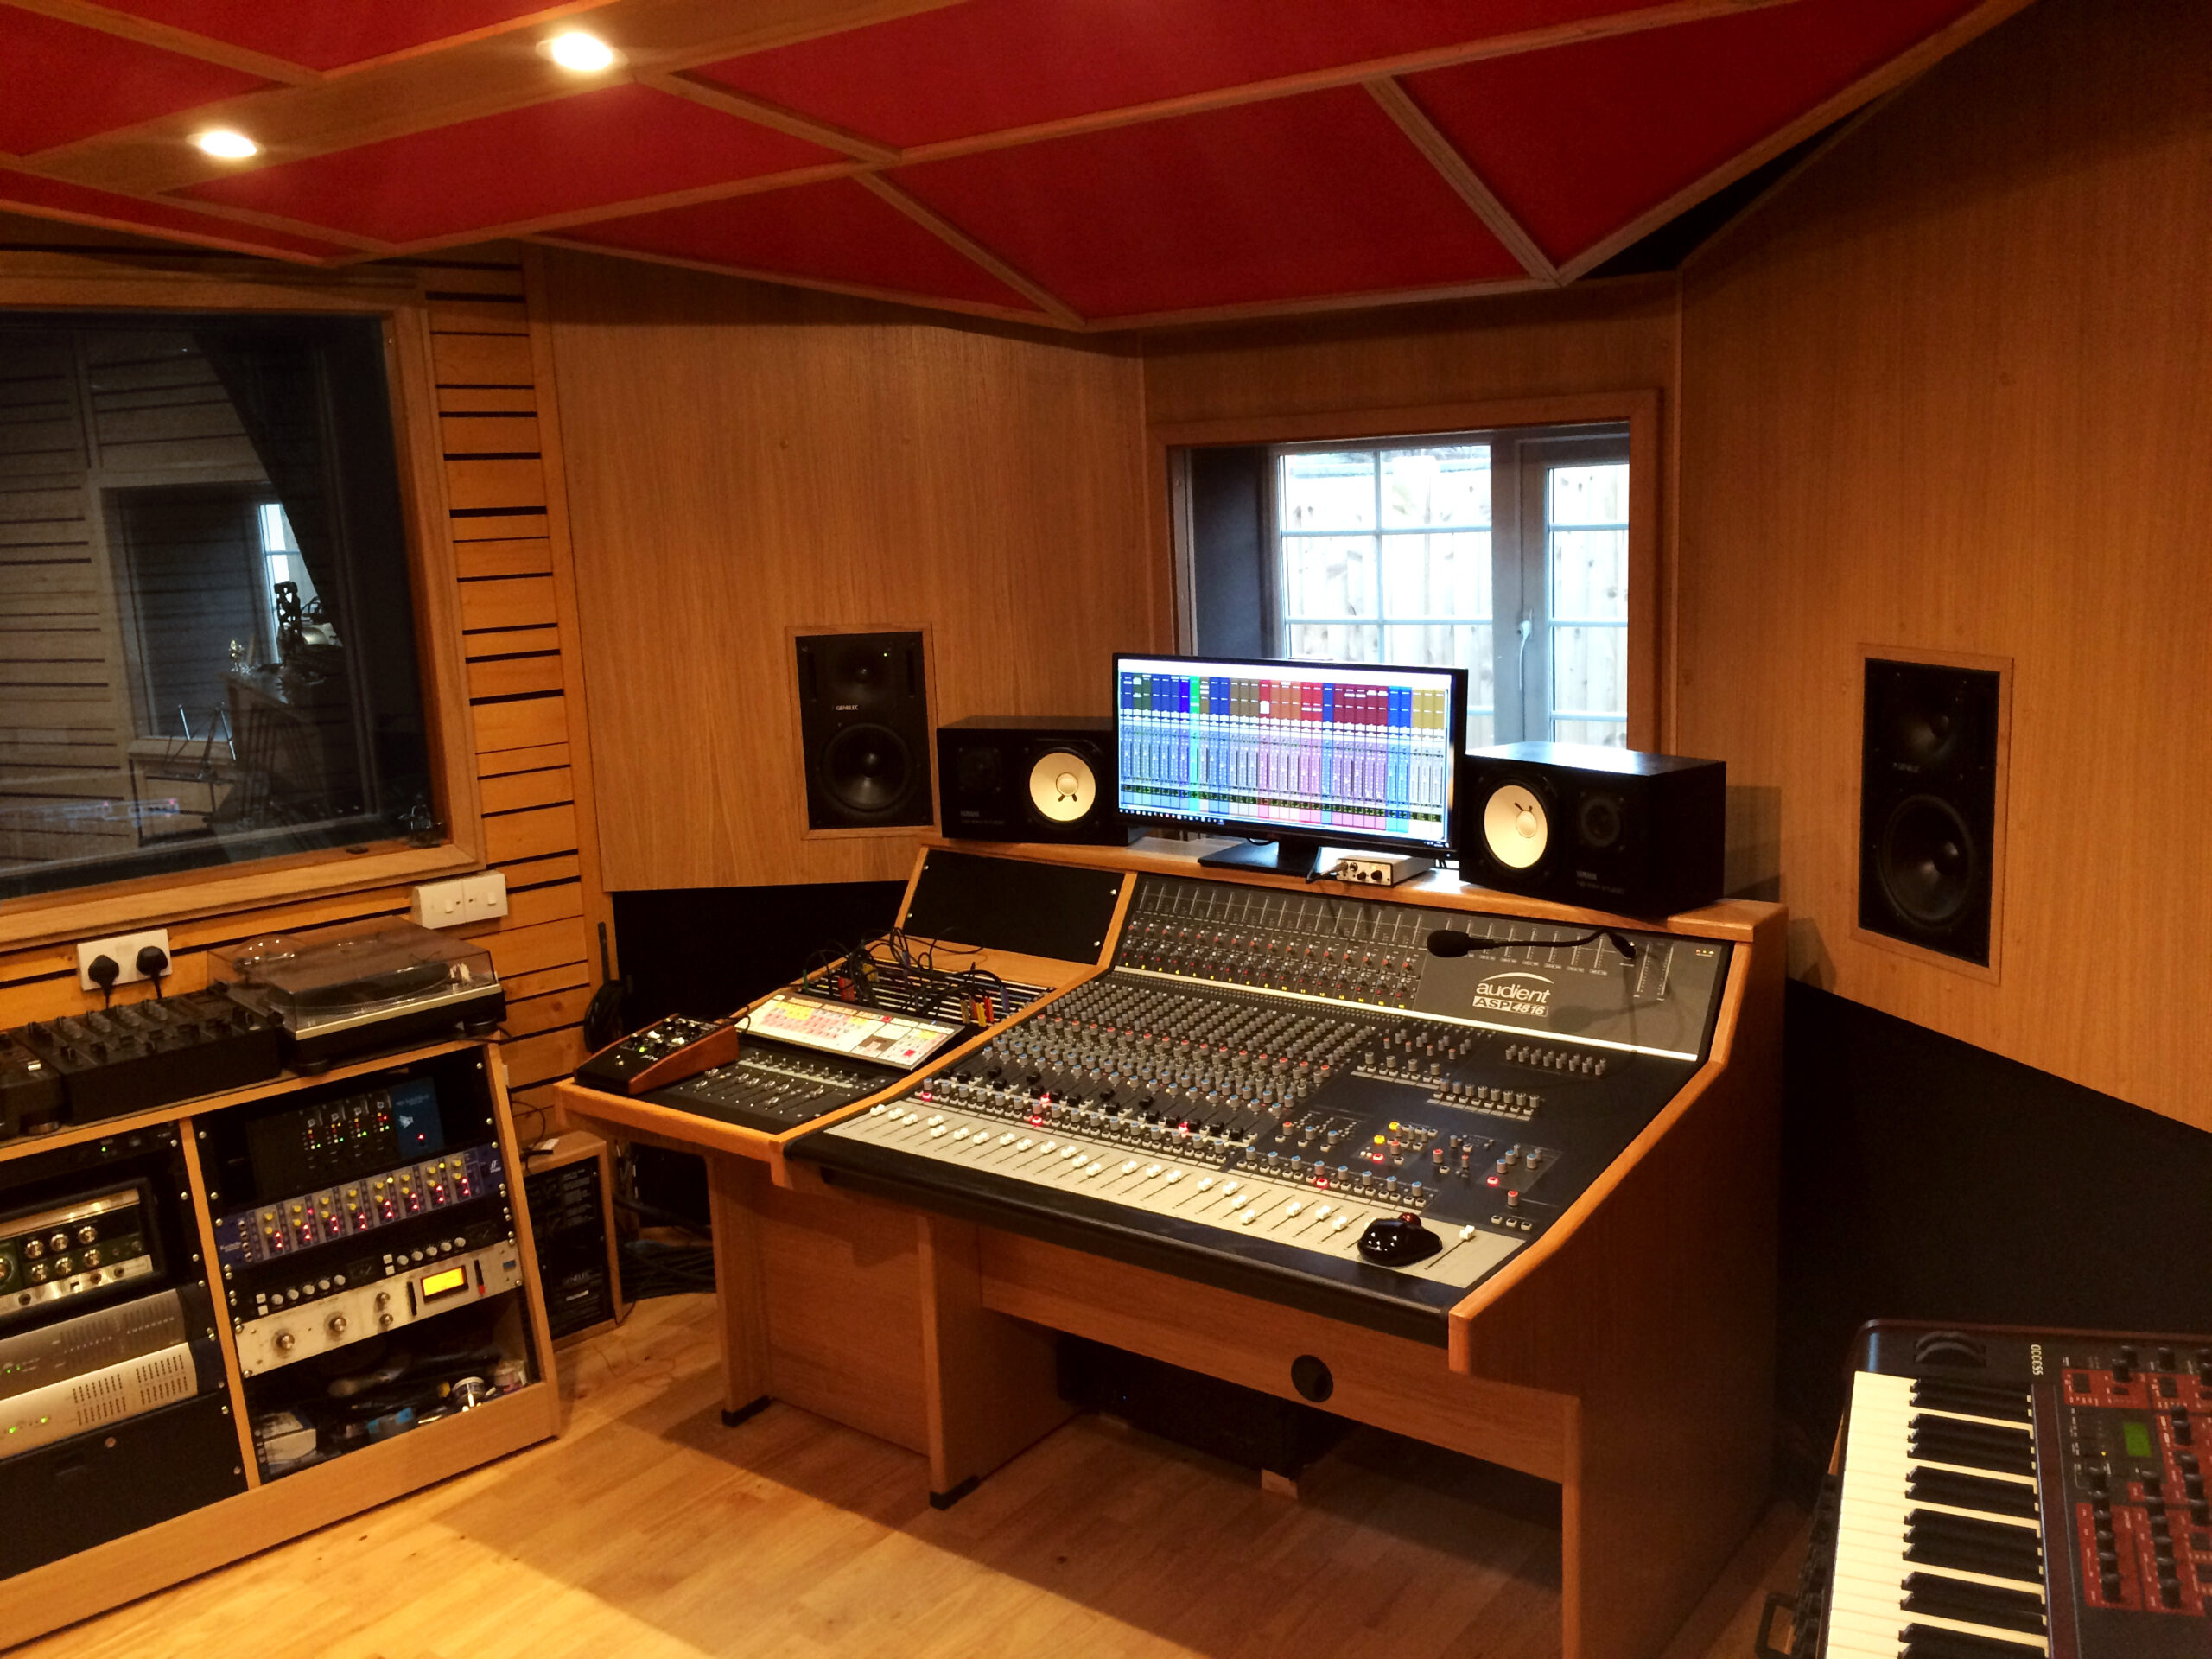 Slipway-Studio_Audient-ASP4816_desk_02